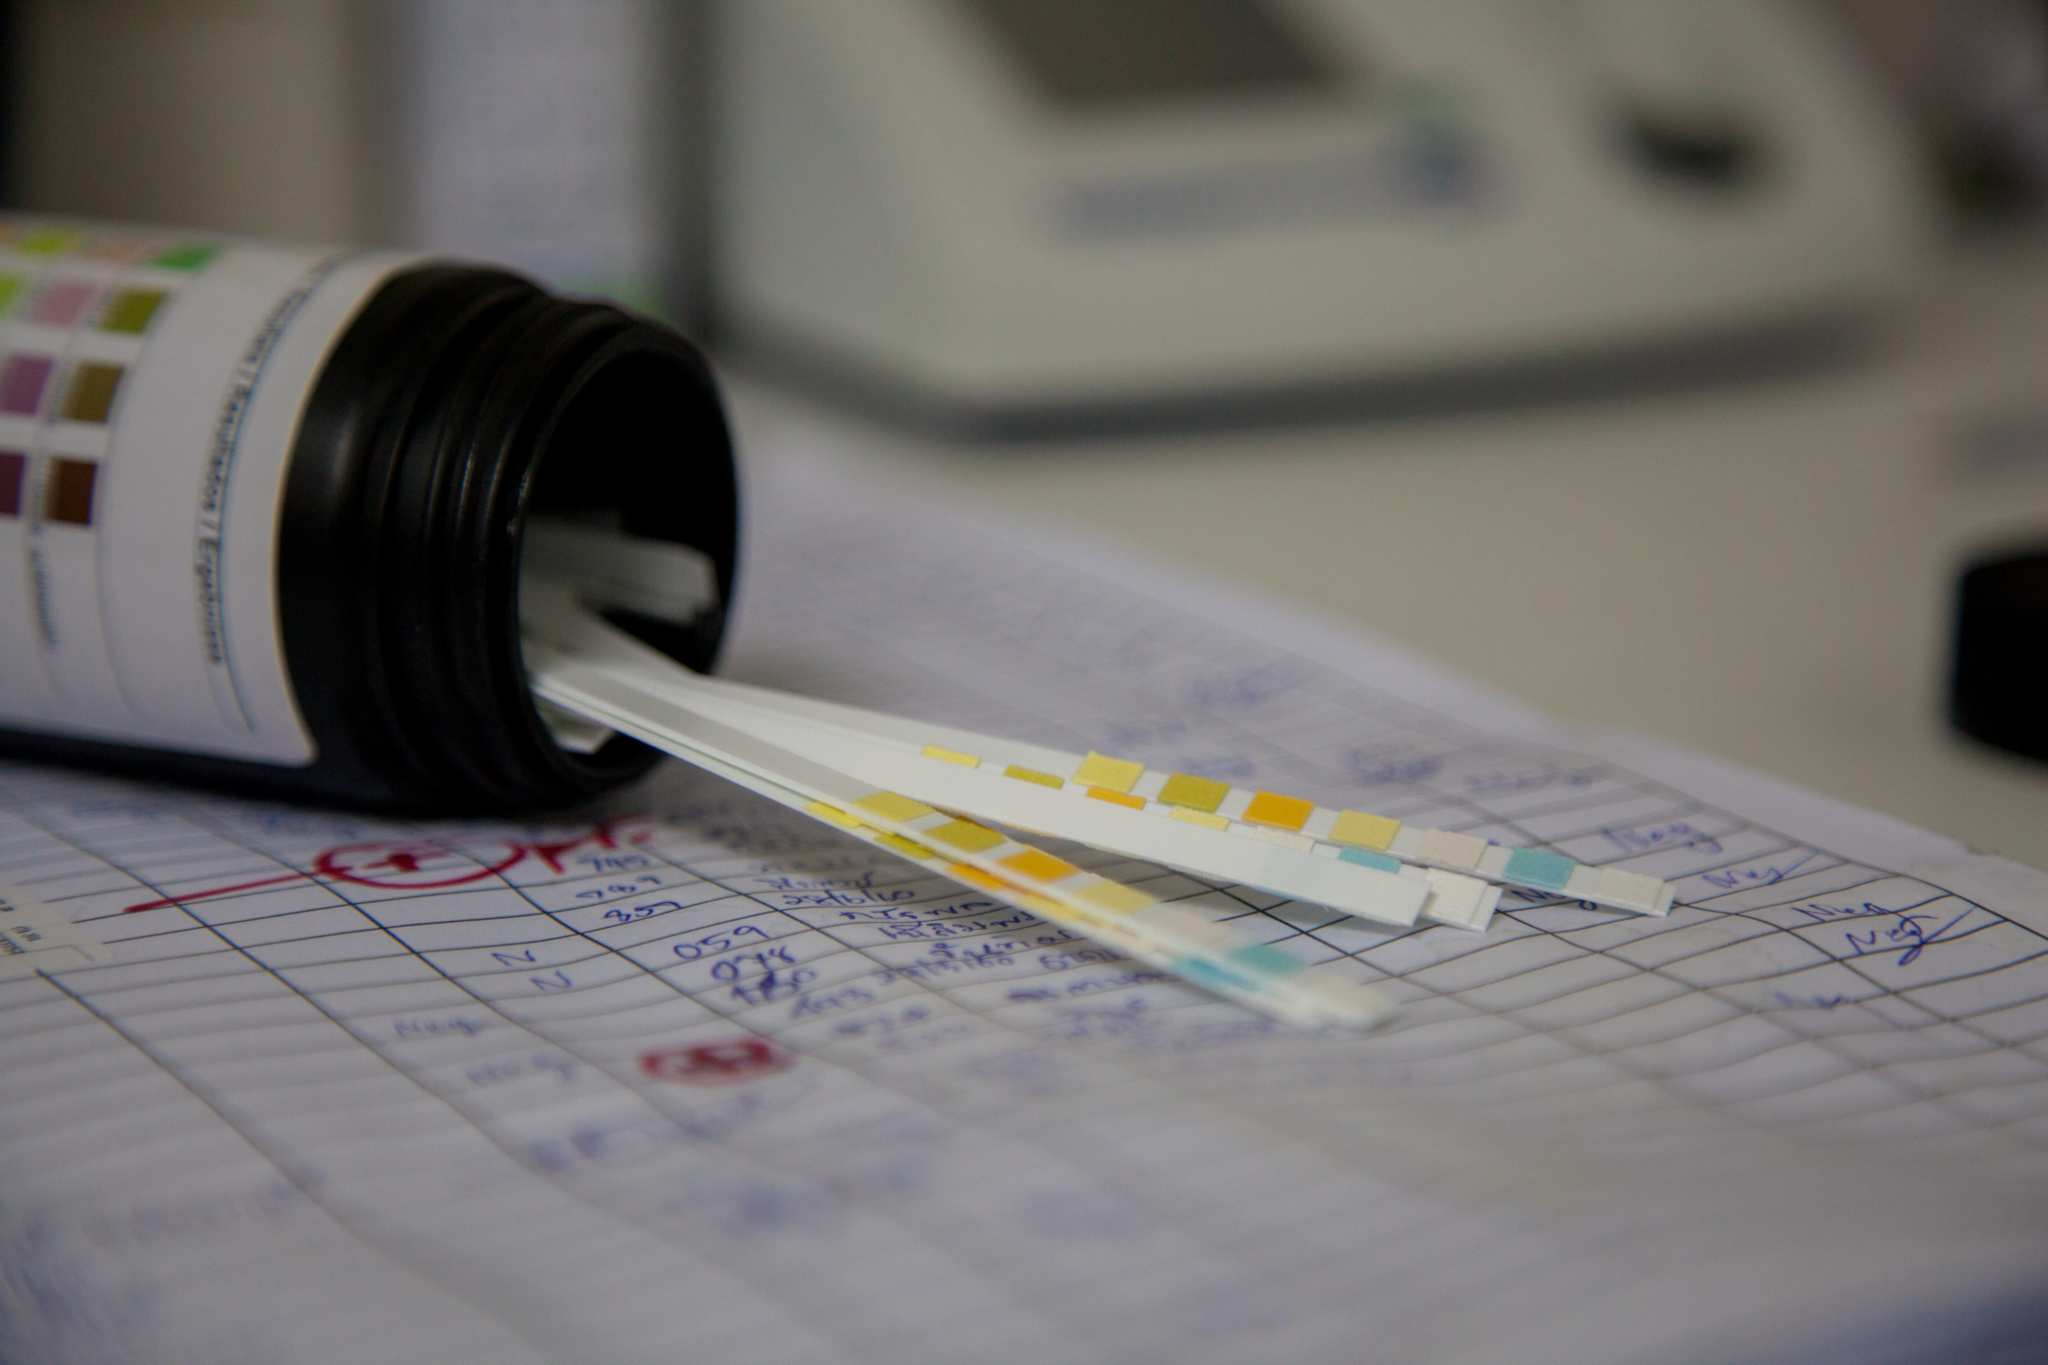 Drug urine test strips spill out onto a page of medical records. Contrary to some beliefs about drug tests and CBD, it is possible but rare for CBD oil to cause someone to fail a drug test.